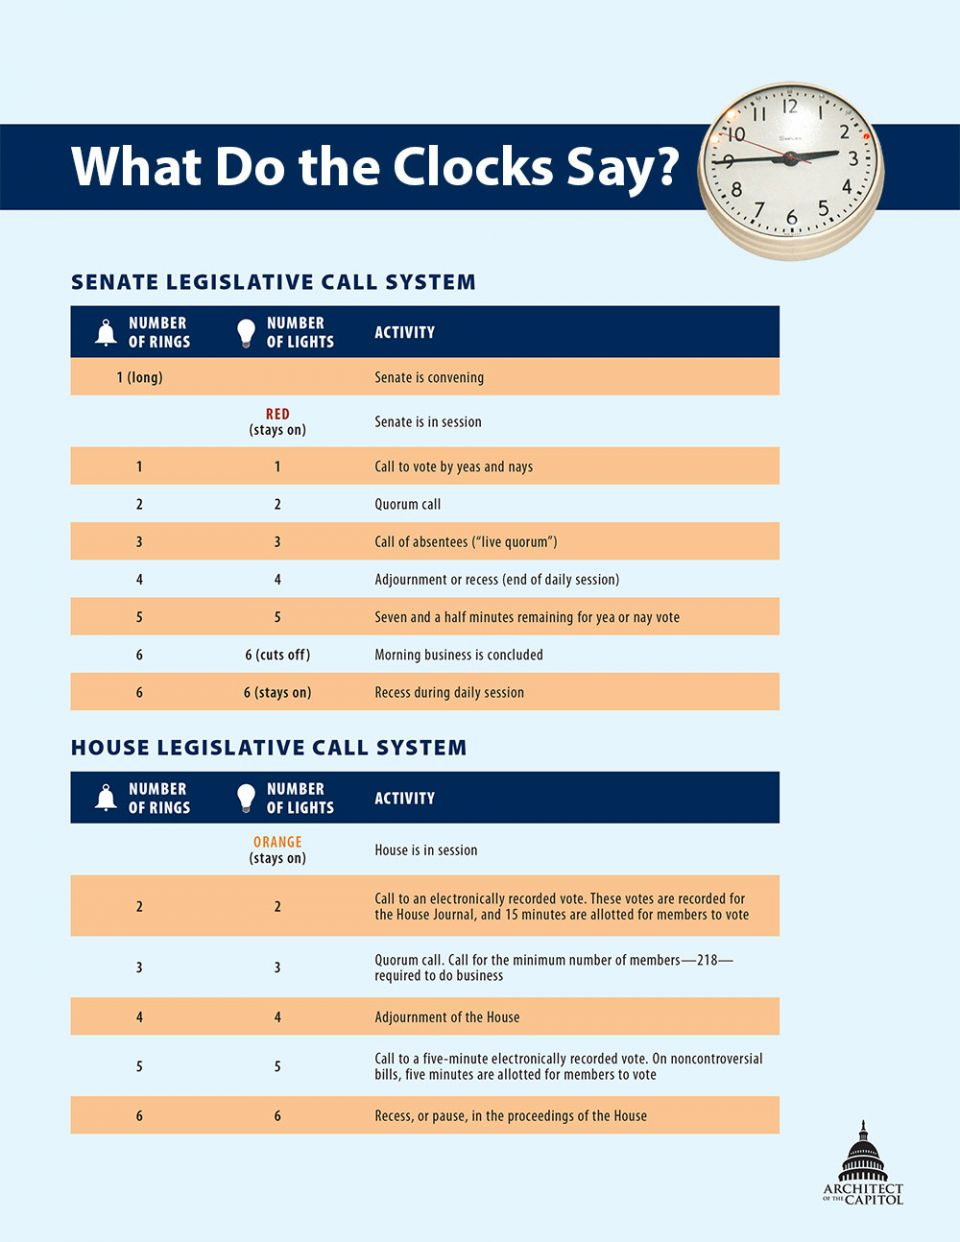 What do the clocks say? This chart explains the different lights and bell rings for the legislative call system.